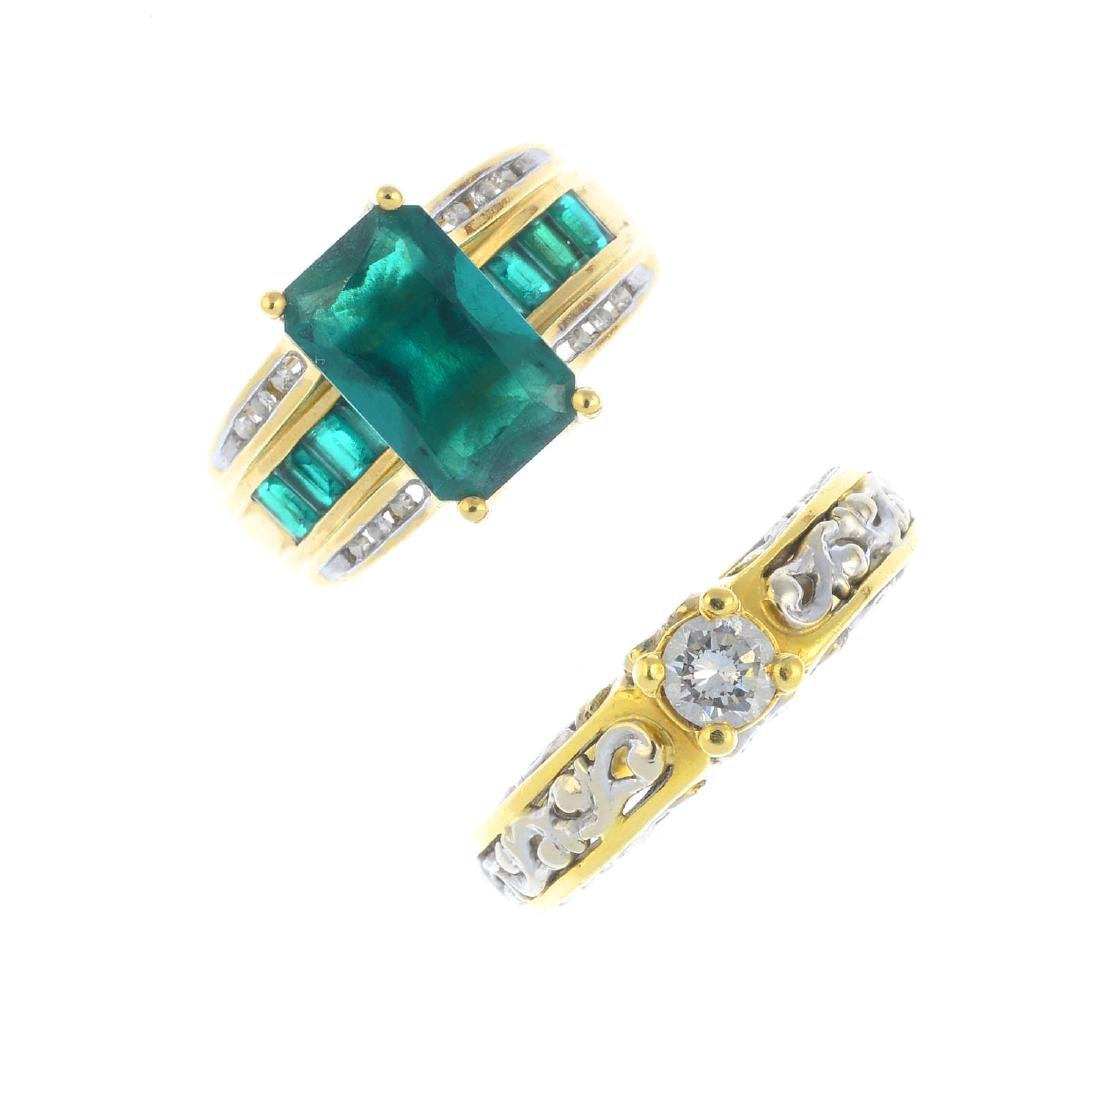 A diamond ring and a synthetic emerald and diamond